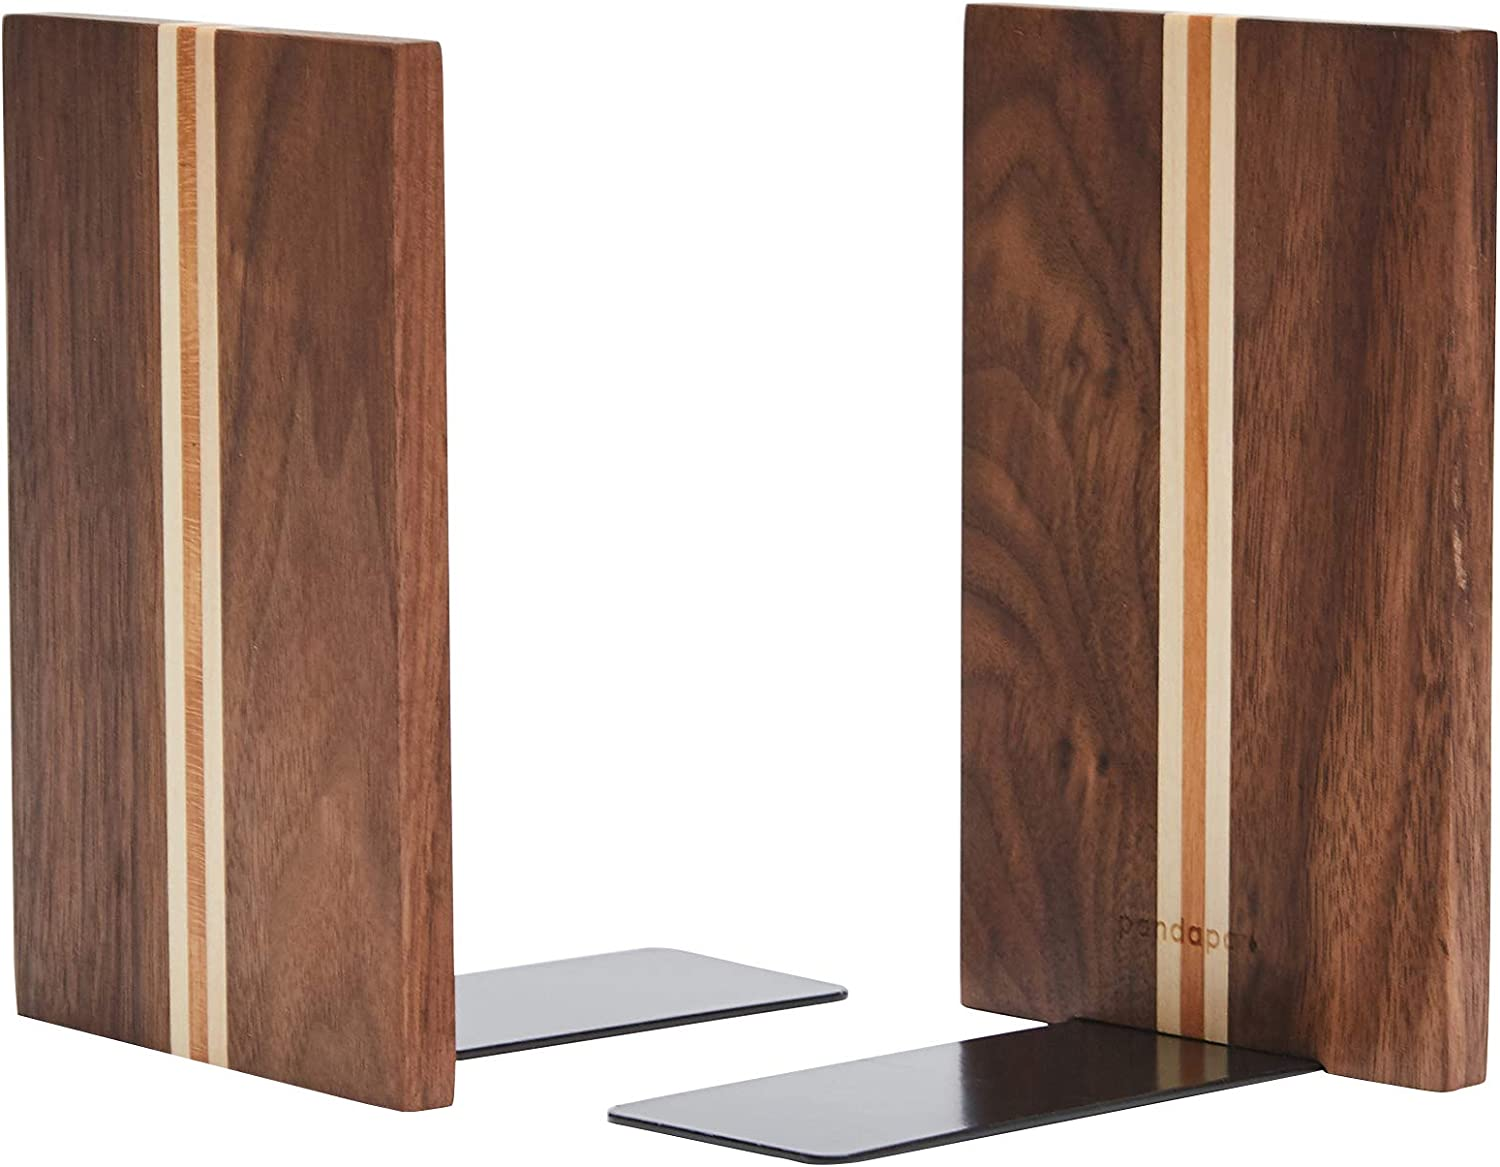 Pandapark New sales Wood Bookends Nature Decorative Coating Nippon regular agency 6''X4' Bookend